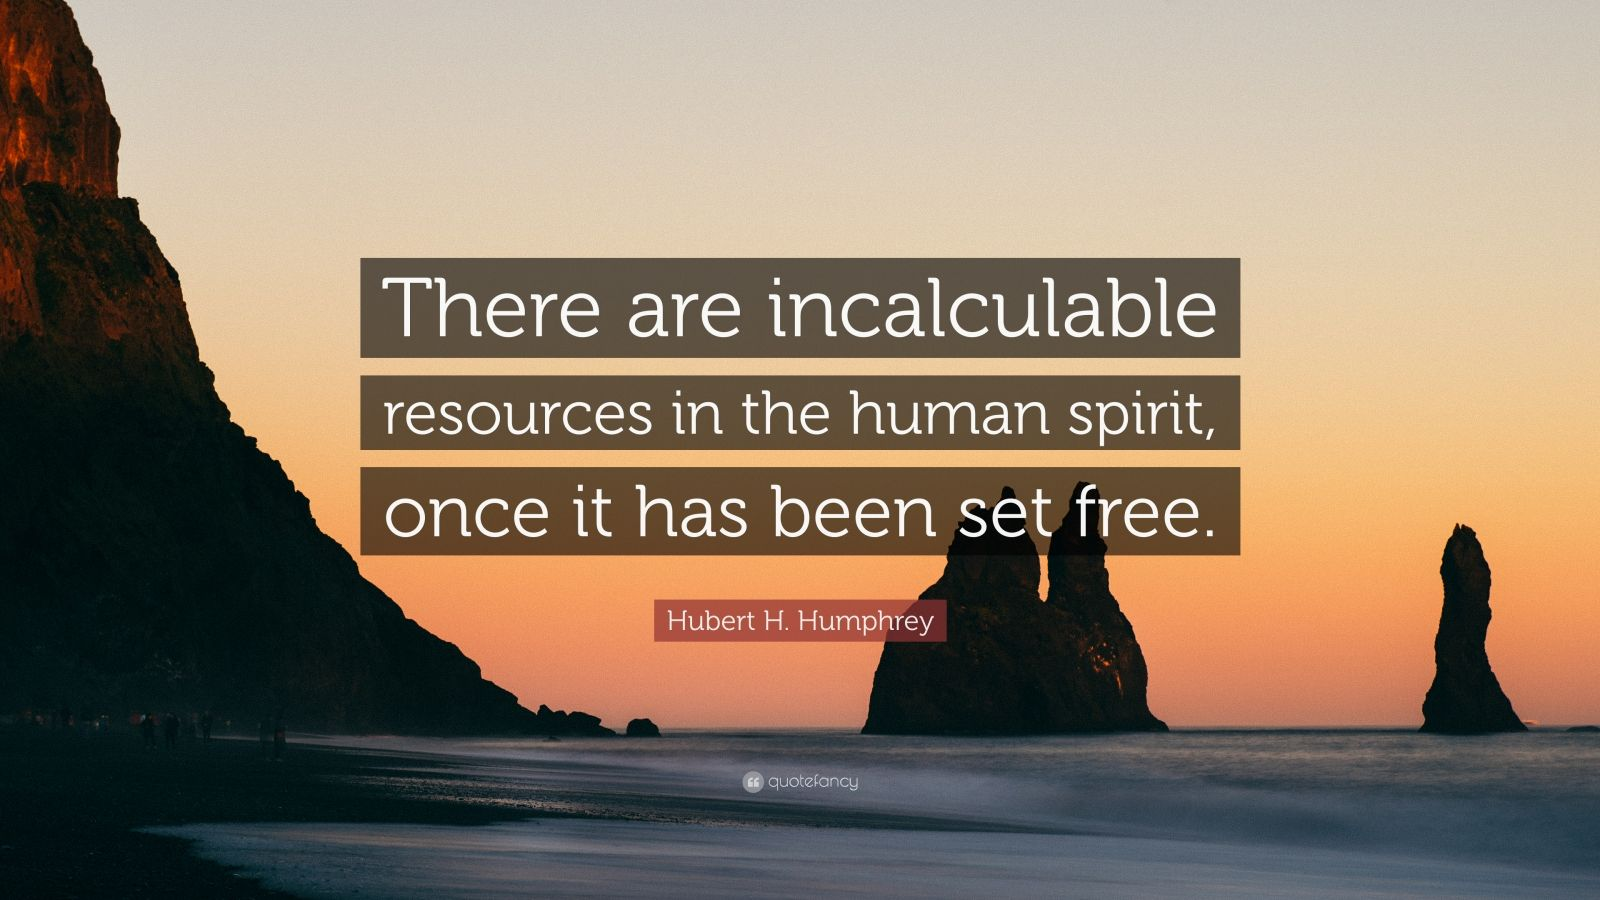 """Hubert H. Humphrey Quote: """"There are incalculable resources in the human spirit, once it has been set free."""""""